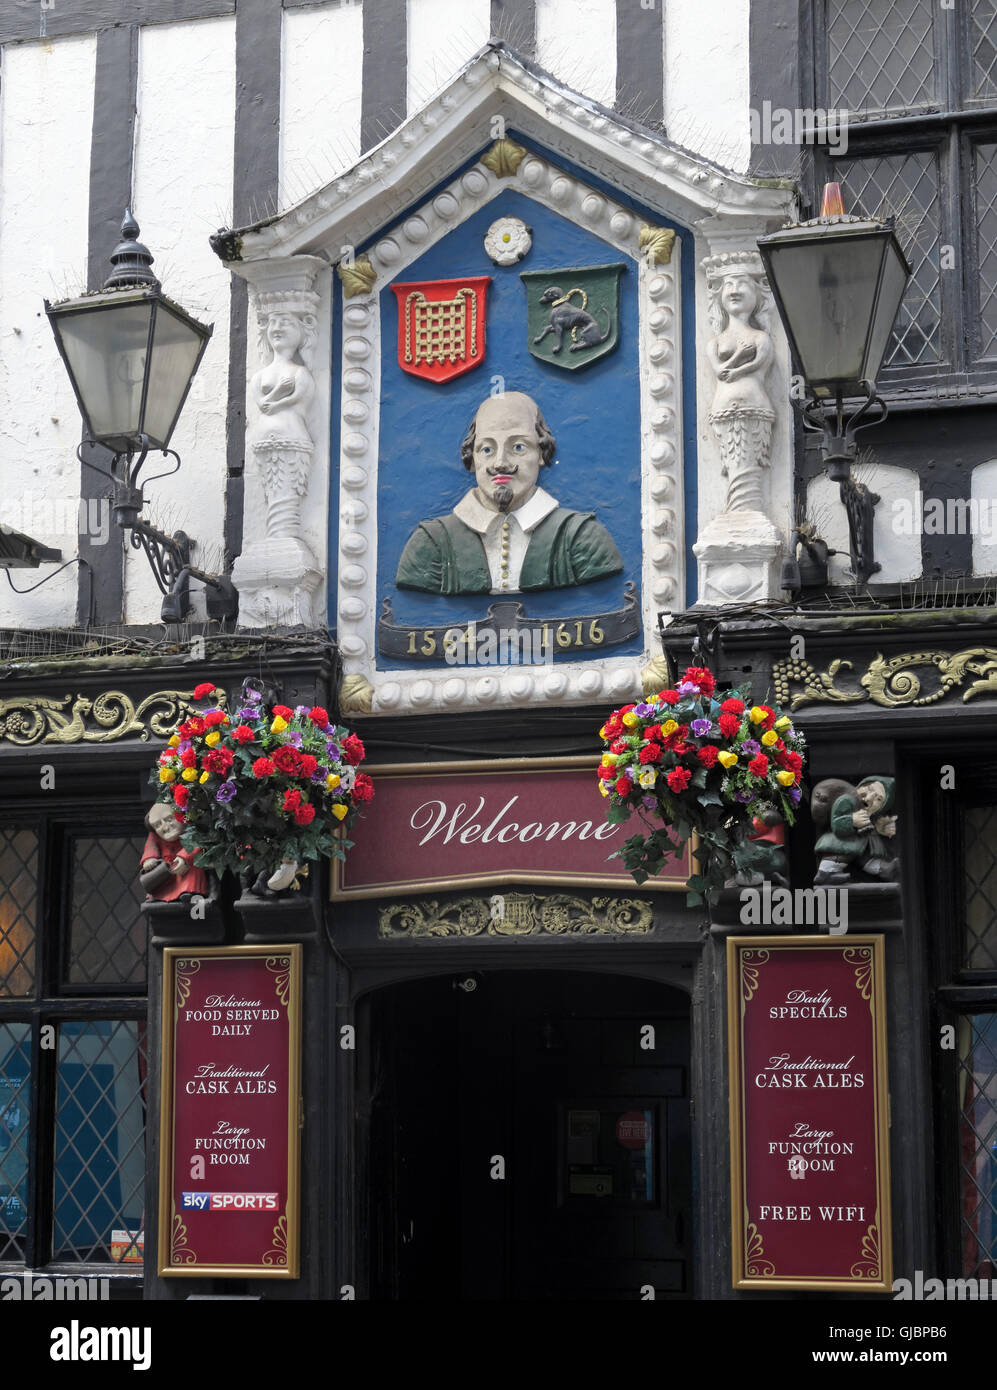 Shakespeare historic pub, 16 Fountain St, City Centre, Manchester M2 2AA - Stock Image